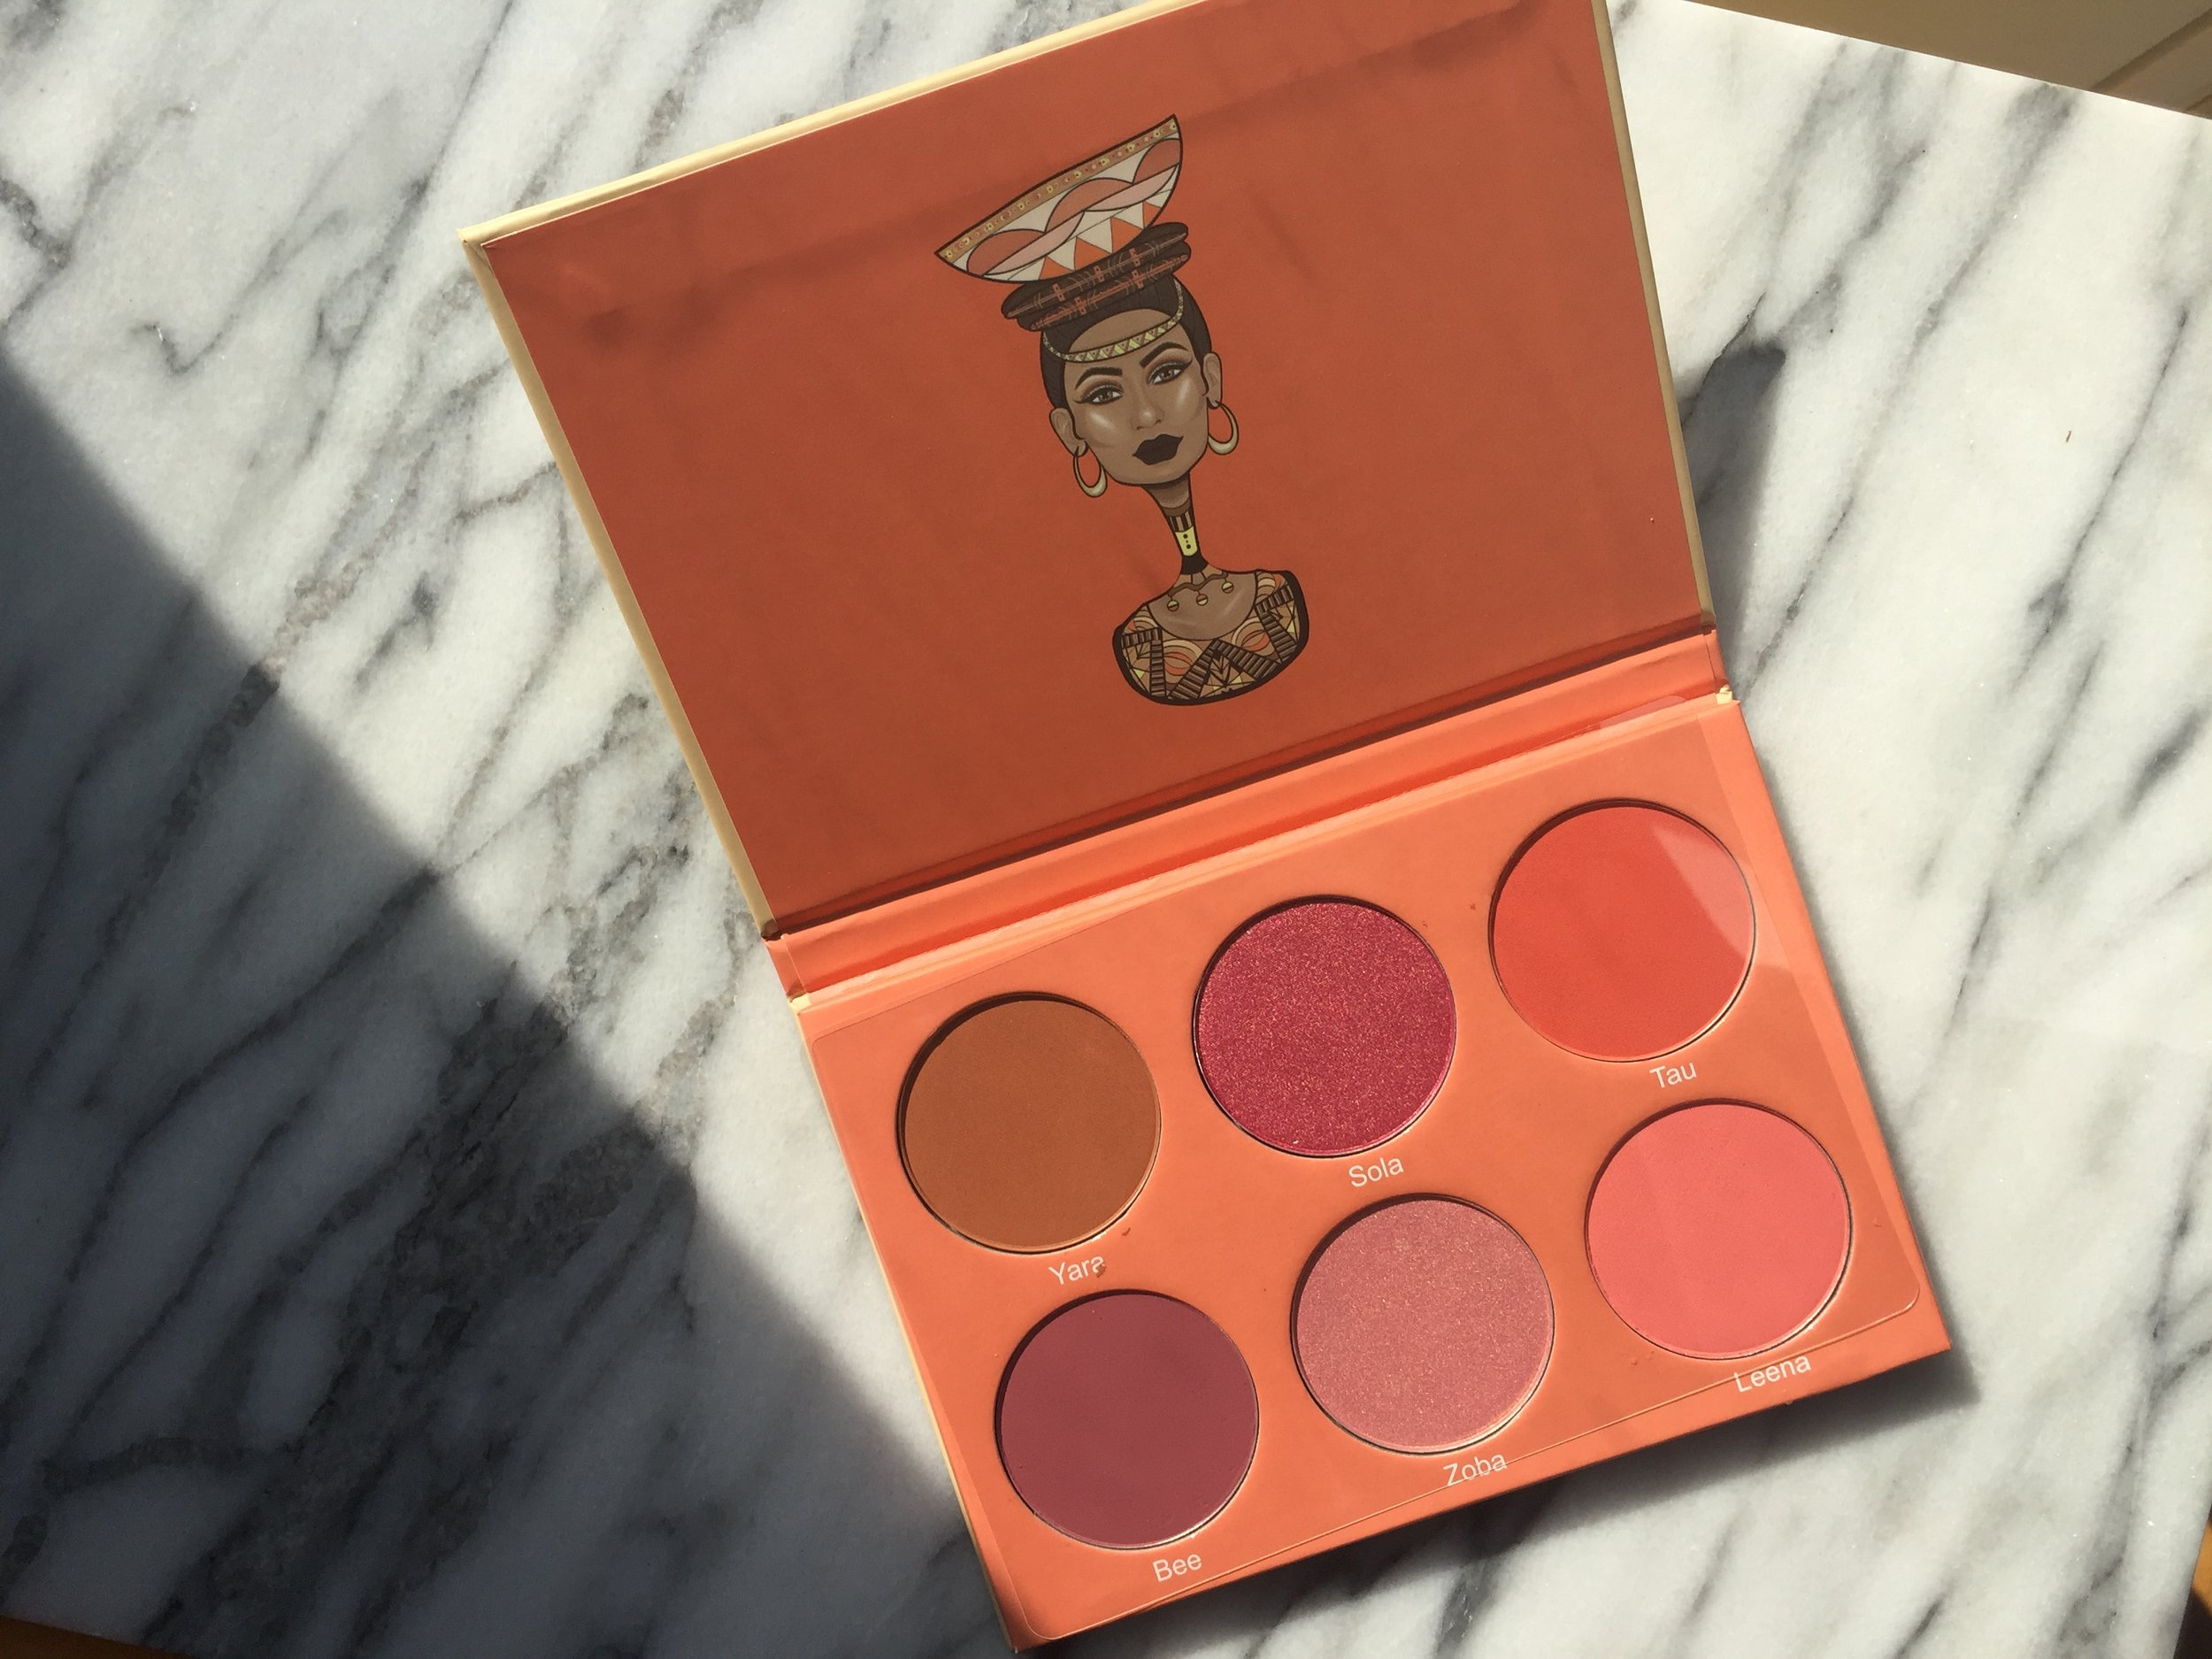 Juvia's place blush palette volume 2